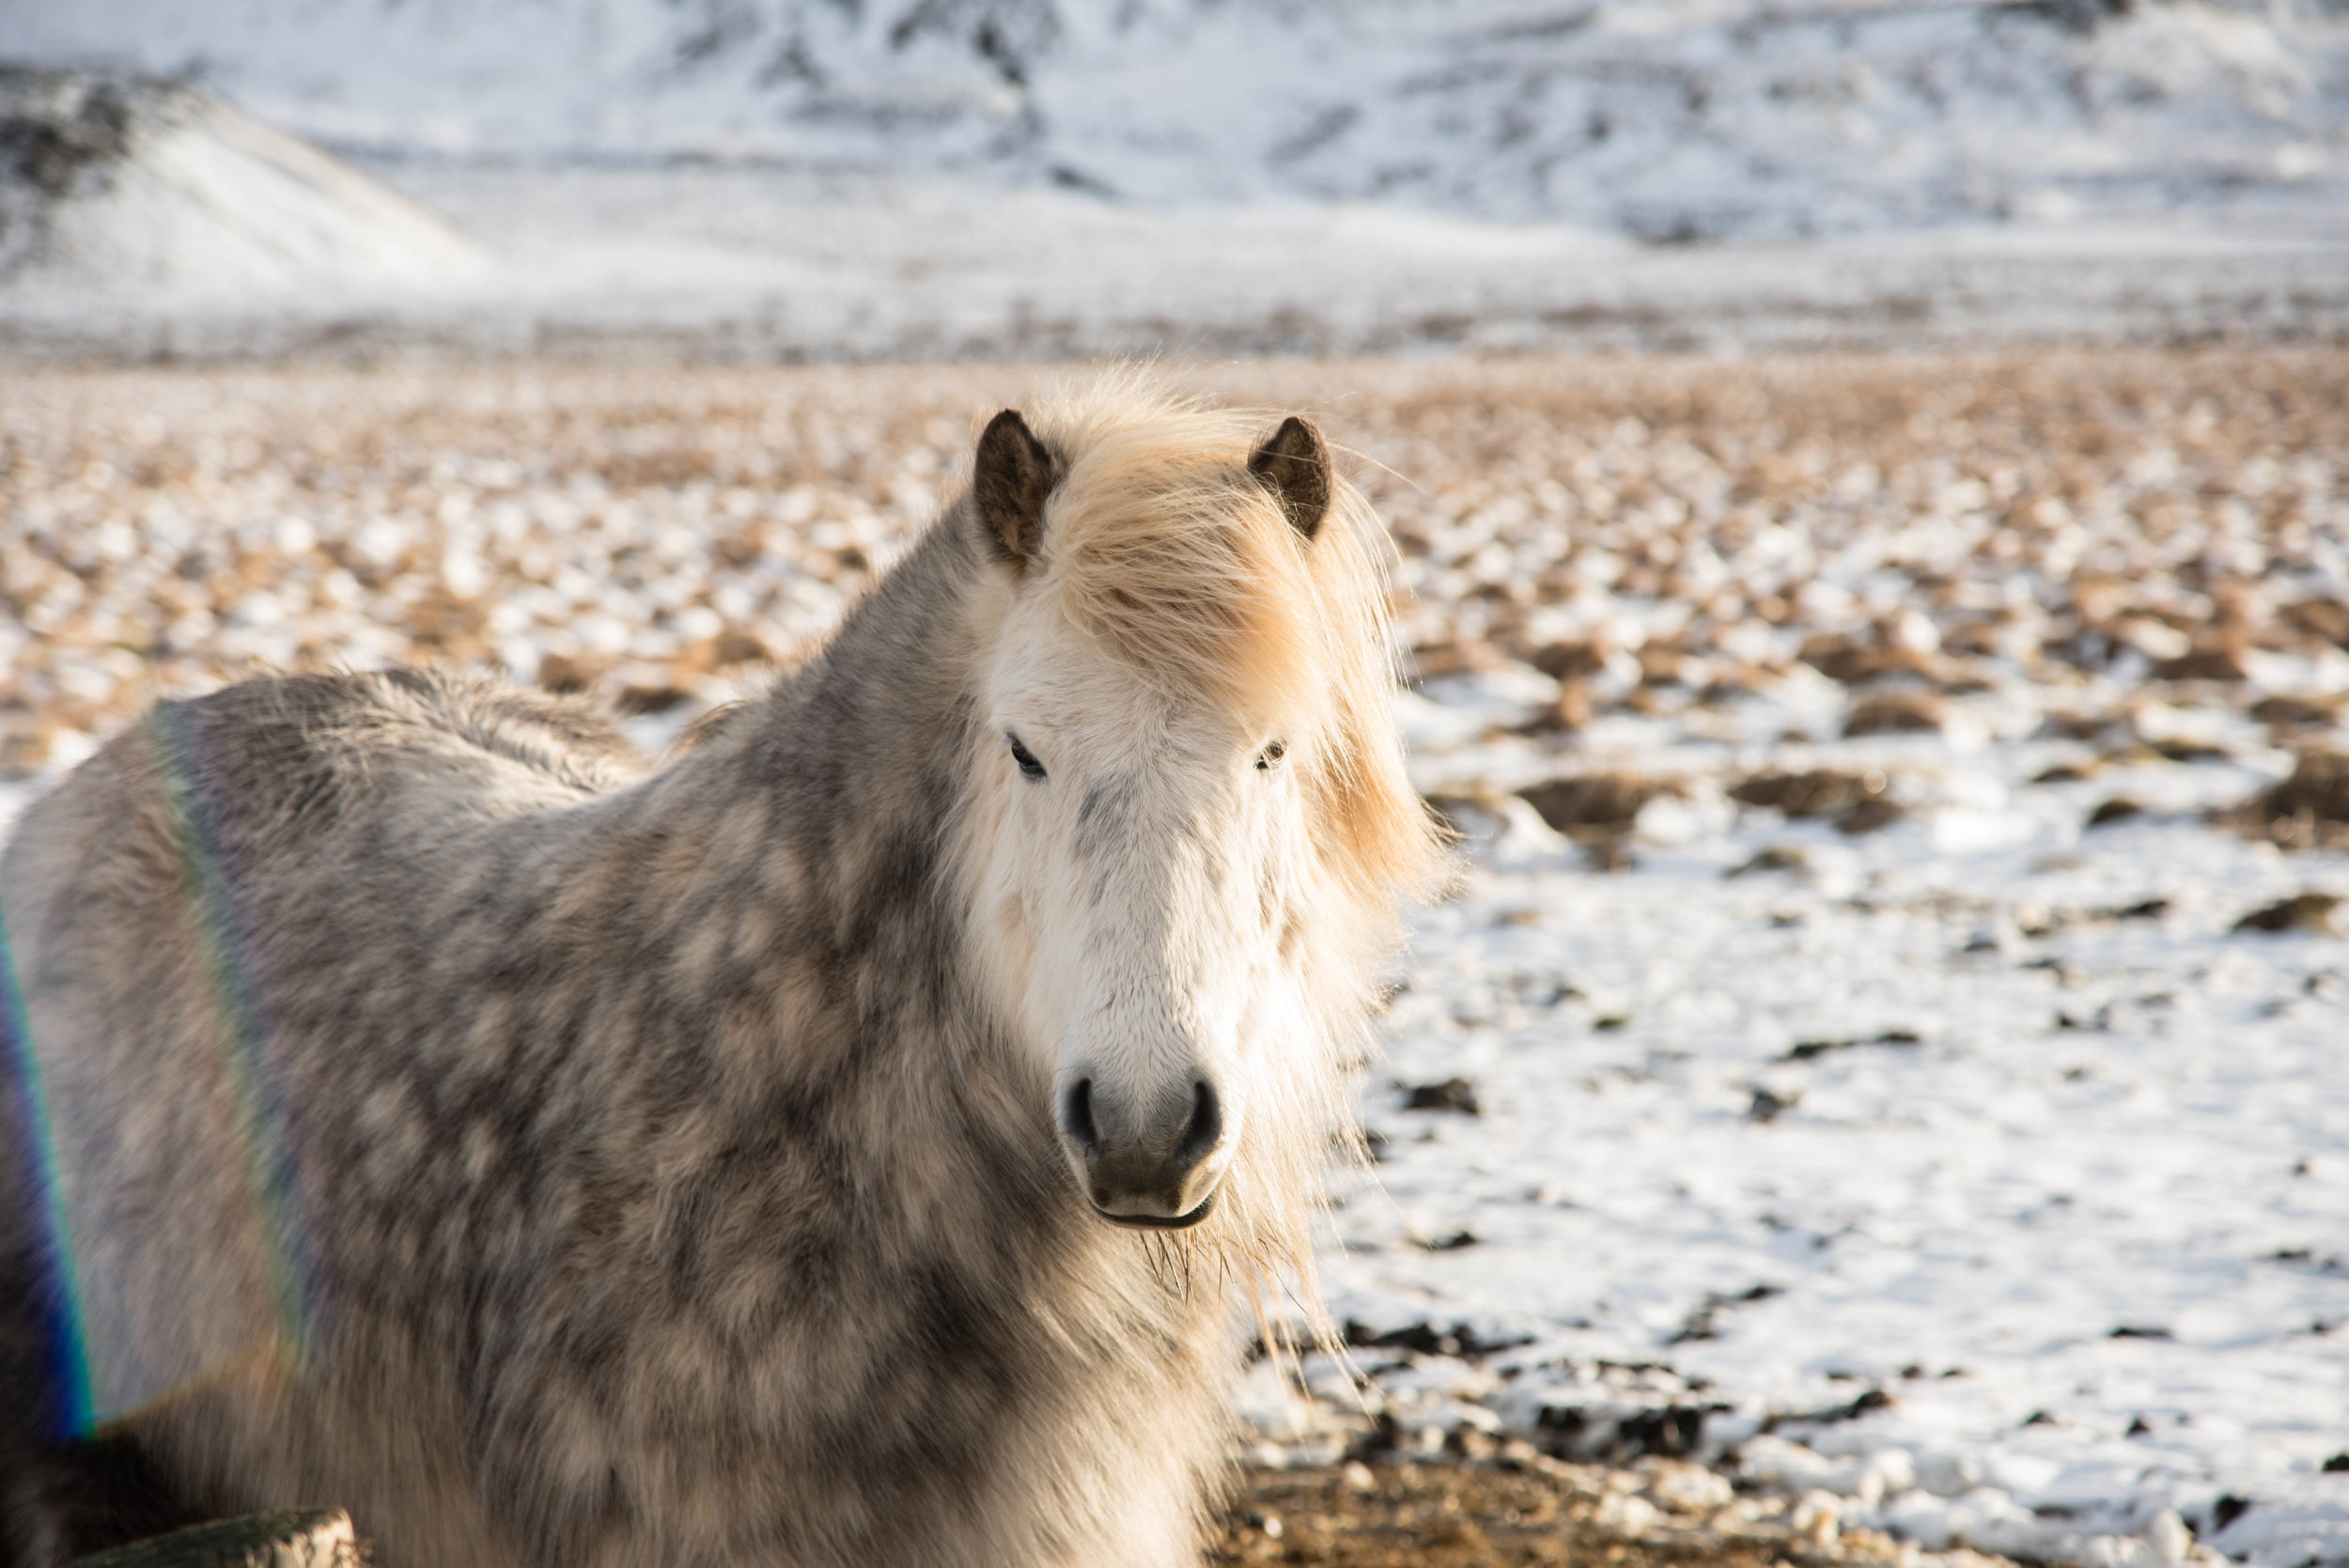 ROSE & IVY Journal Escape to Iceland | All the Wild Horses